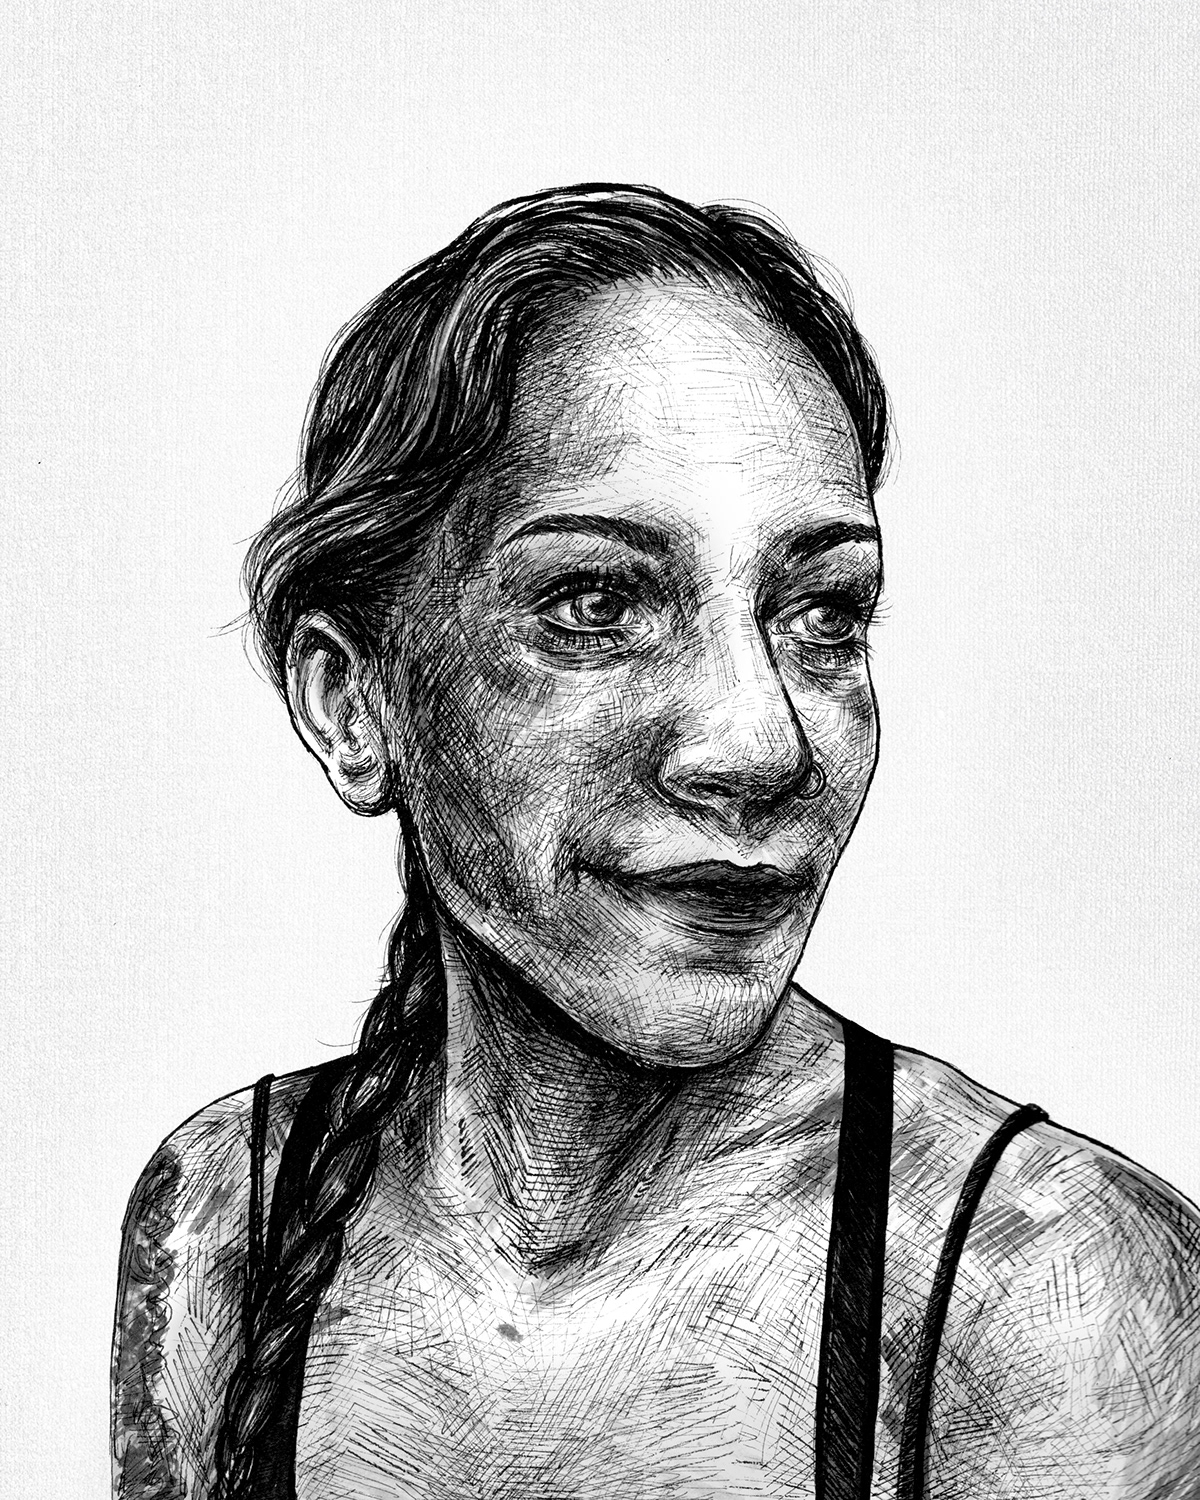 micron pen crosshatching portrait black and white Drawing  fine art Marker Copic art ink